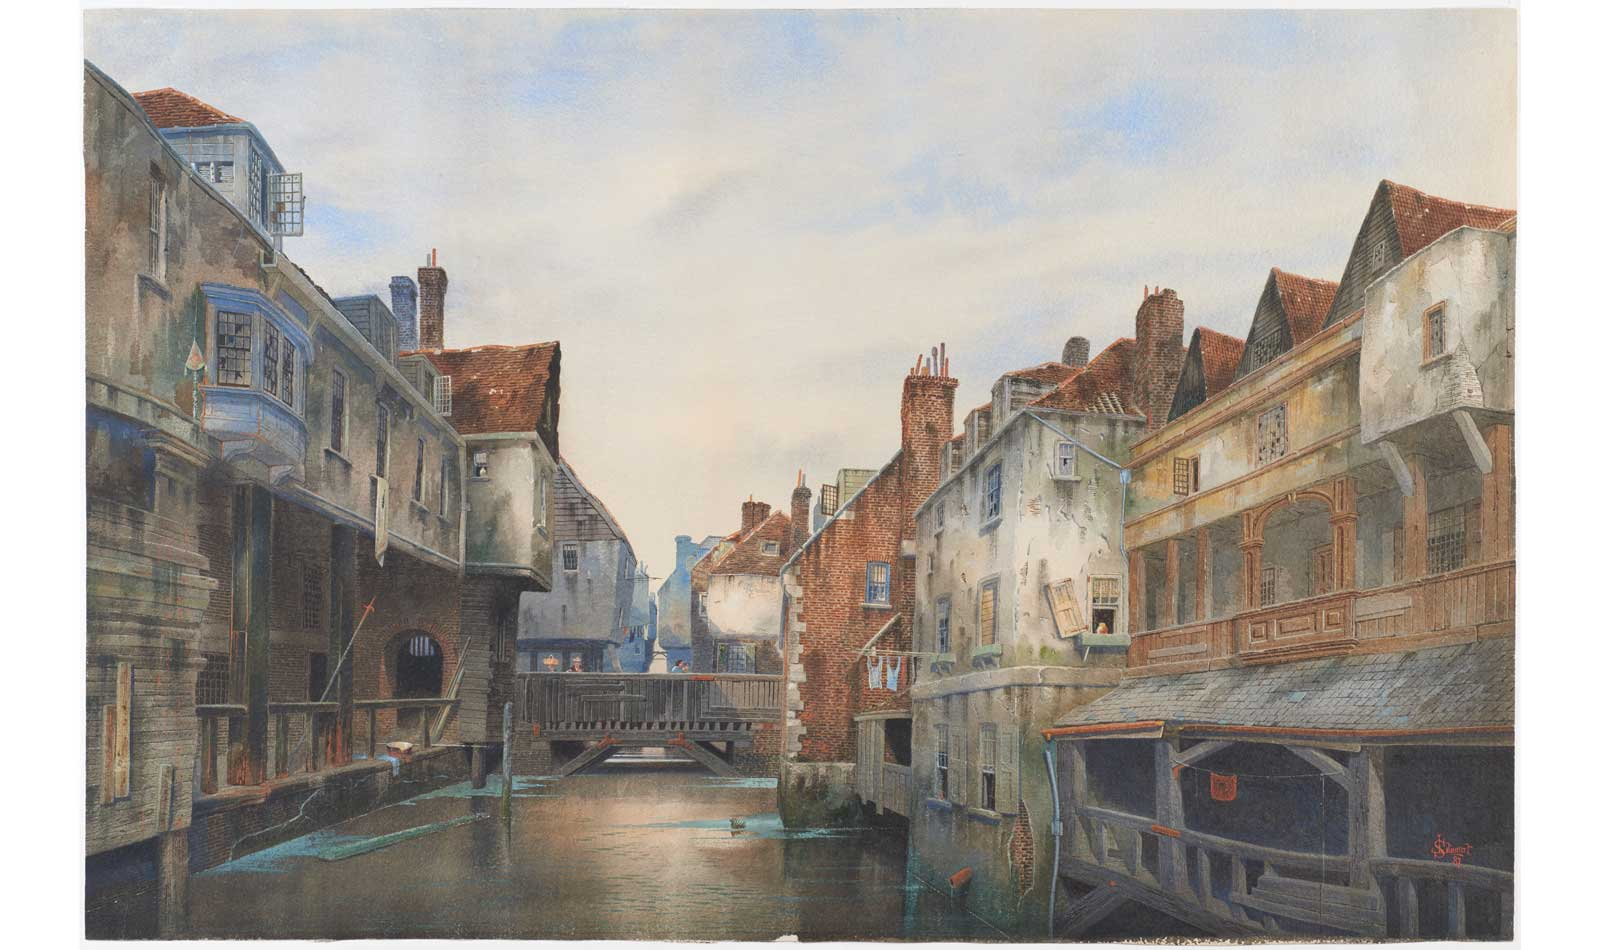 A painting of Jacob's Island, a 19th century London slum.